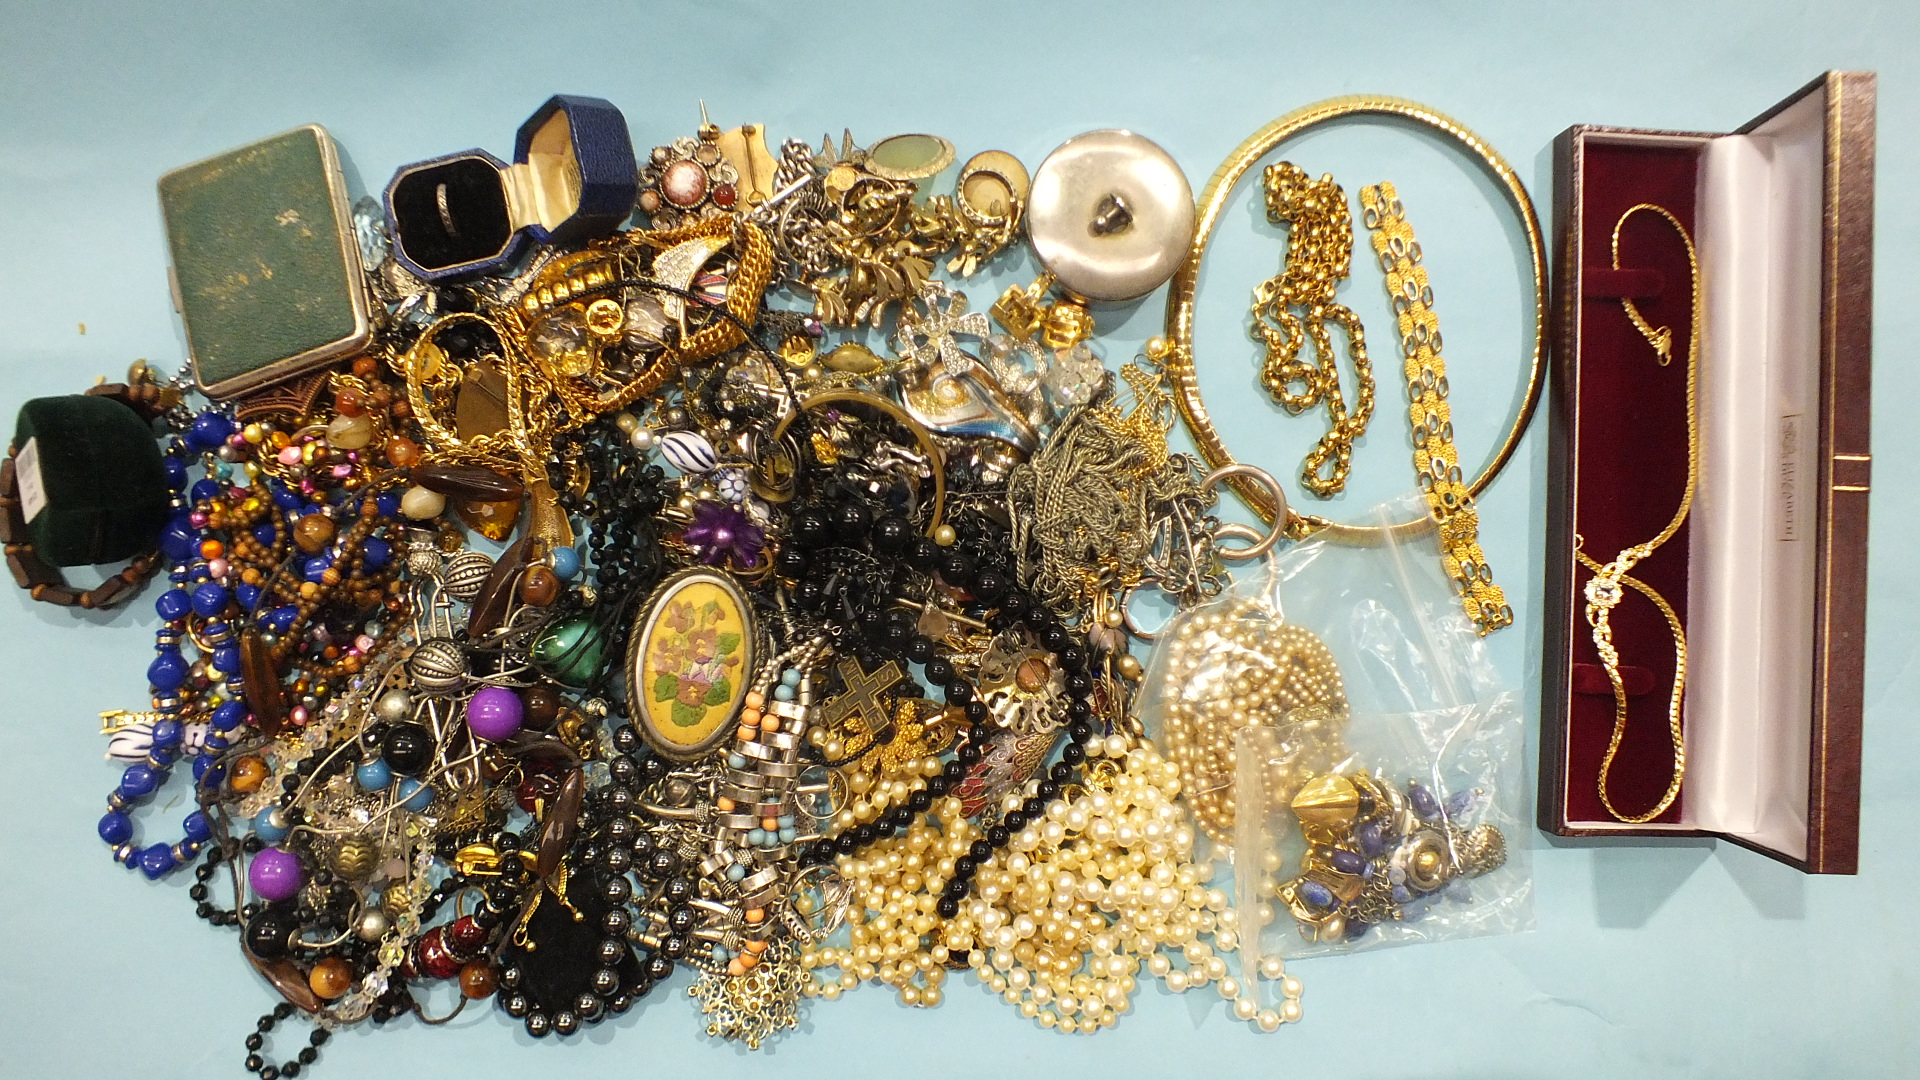 Lot 186 - A Trifari bracelet, a Monet chain necklace and other costume jewellery.